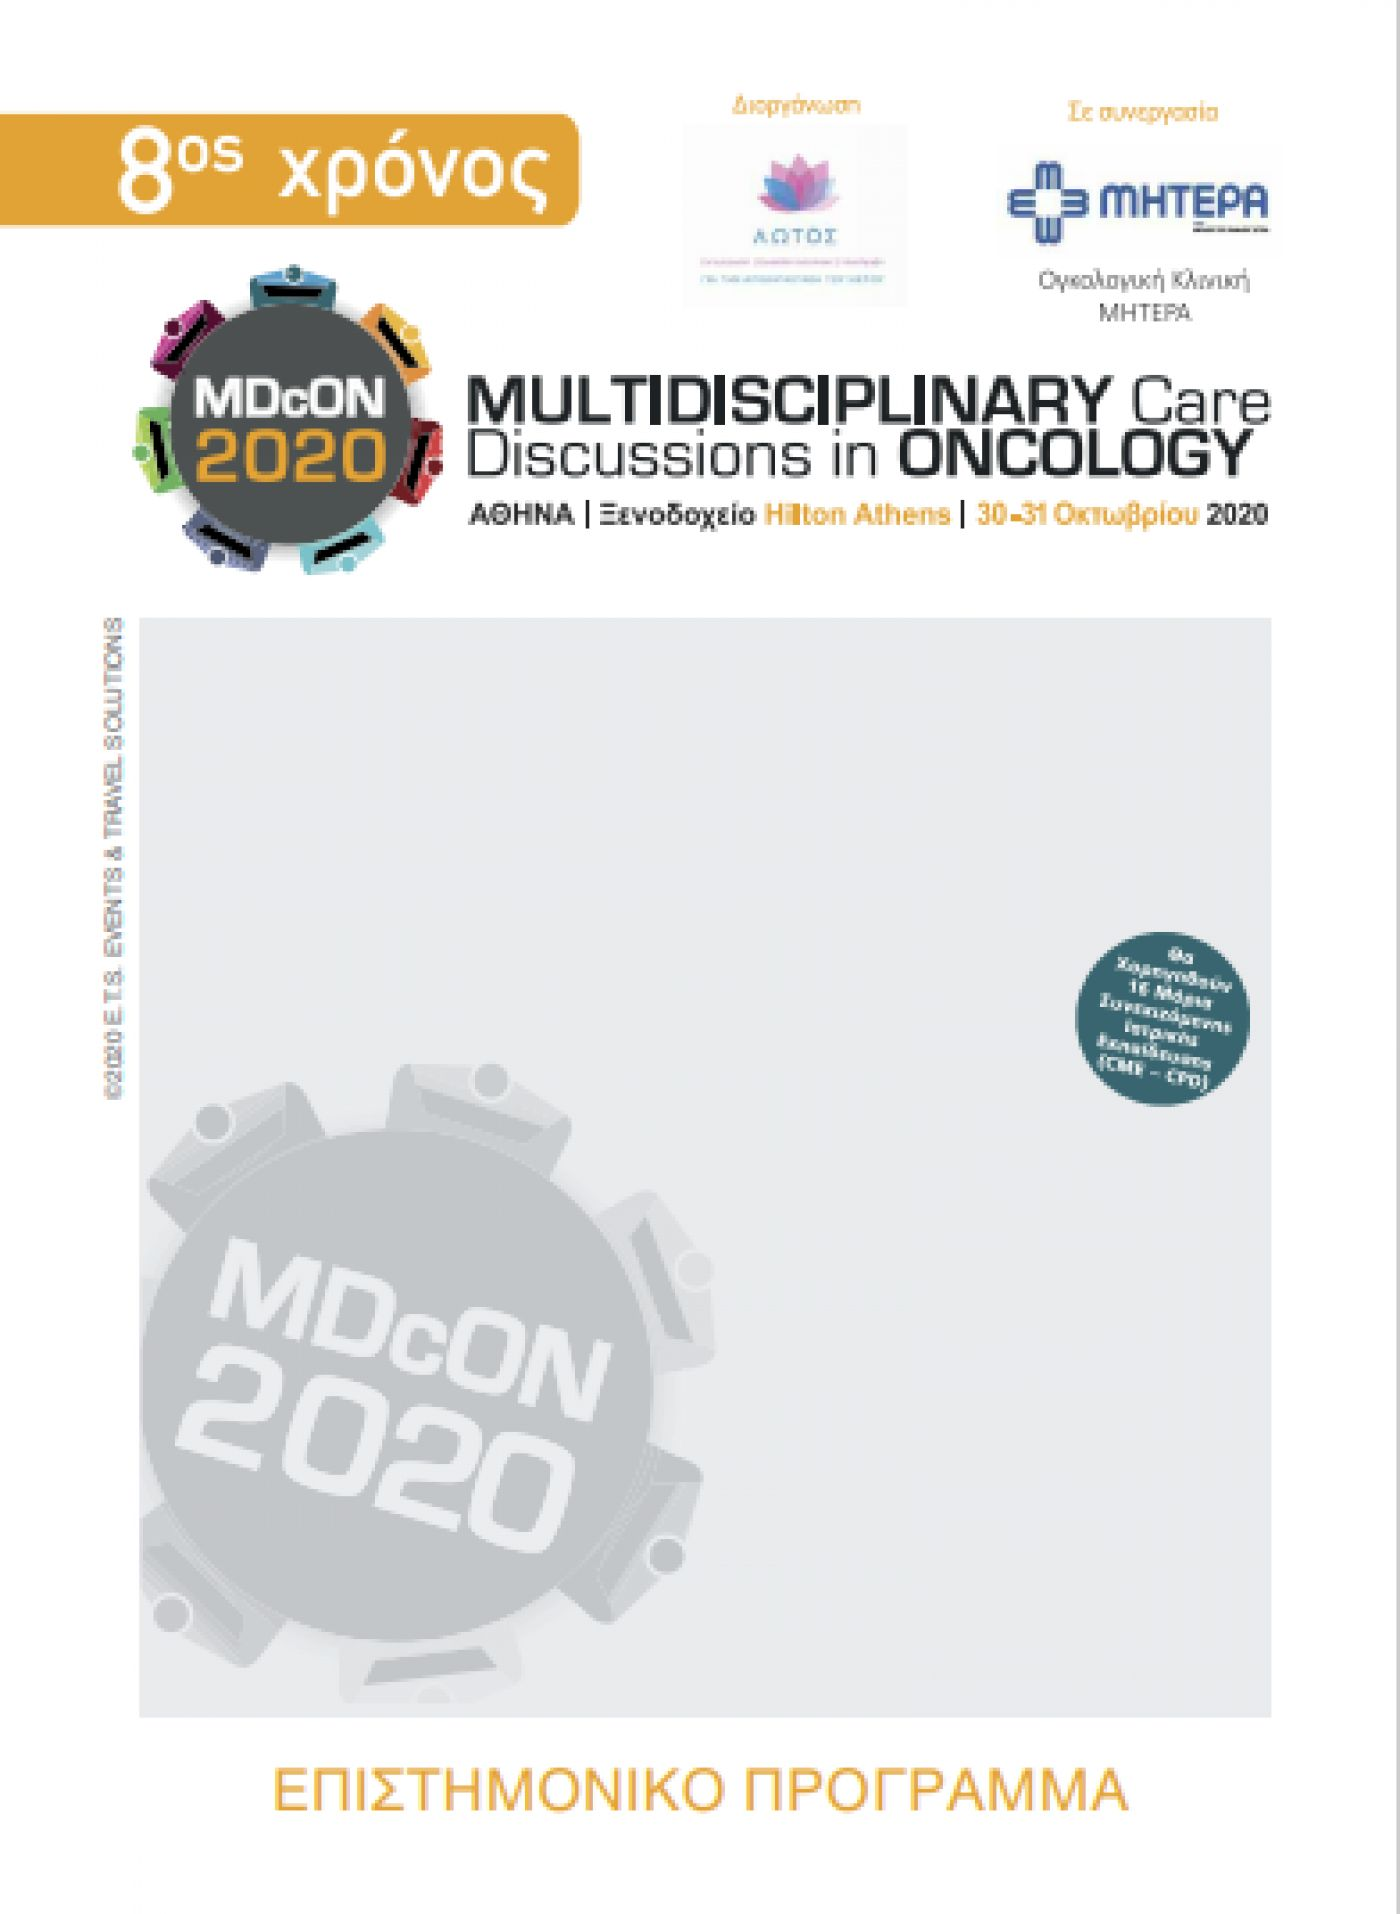 MDcON 2020 - Multidisciplinary Care Discussions in Oncology (30-31 Oκτωβρίου 2020)